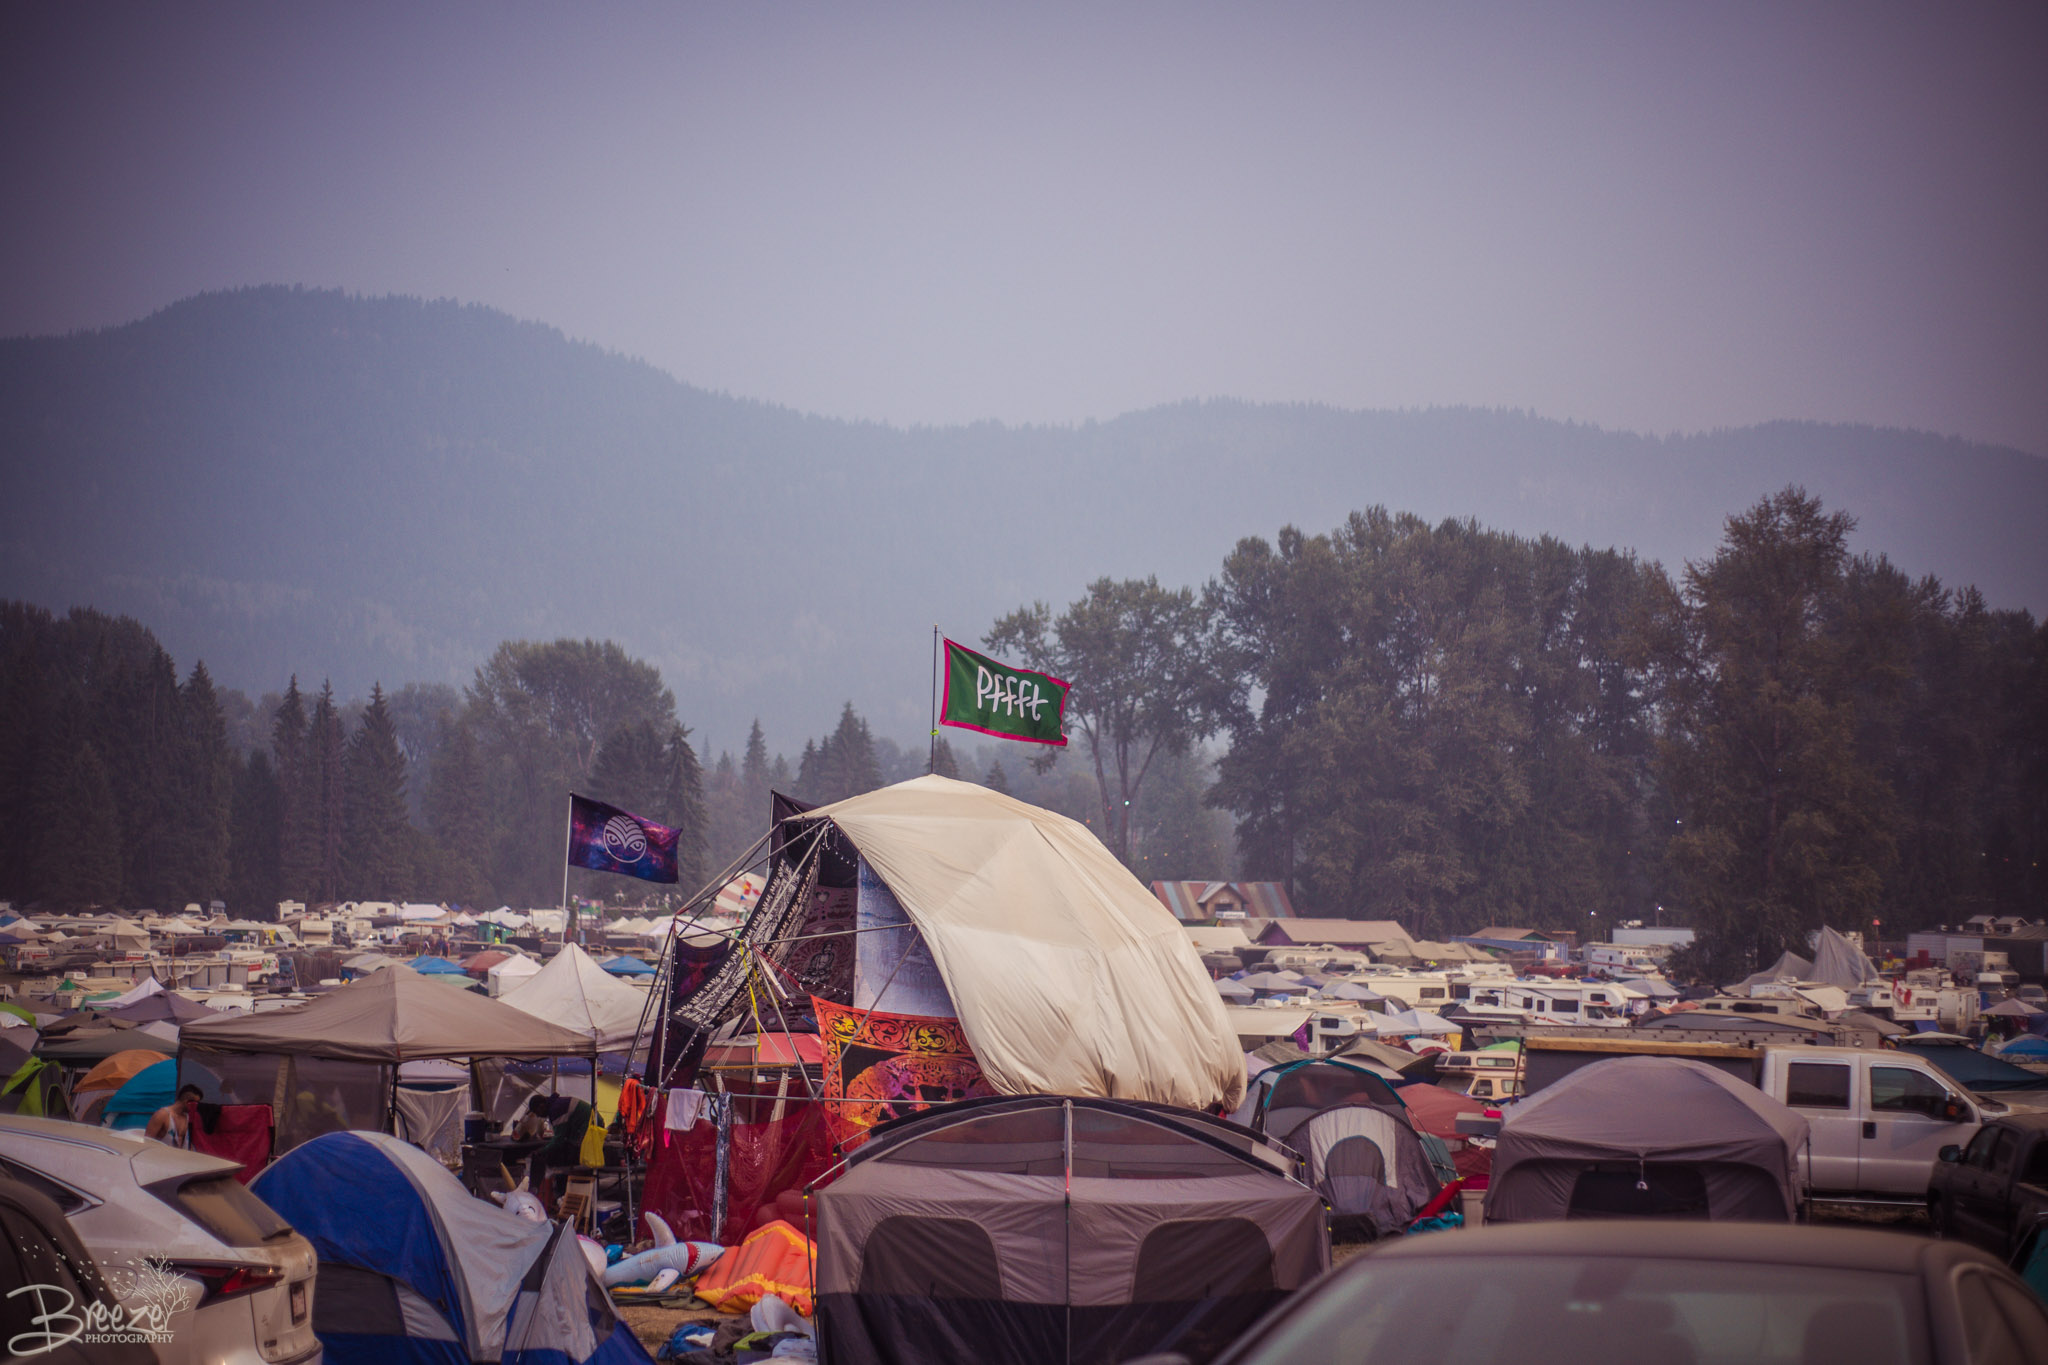 Brie'Ana Breeze Photography & Media - Shambhala 2018-1796.jpg